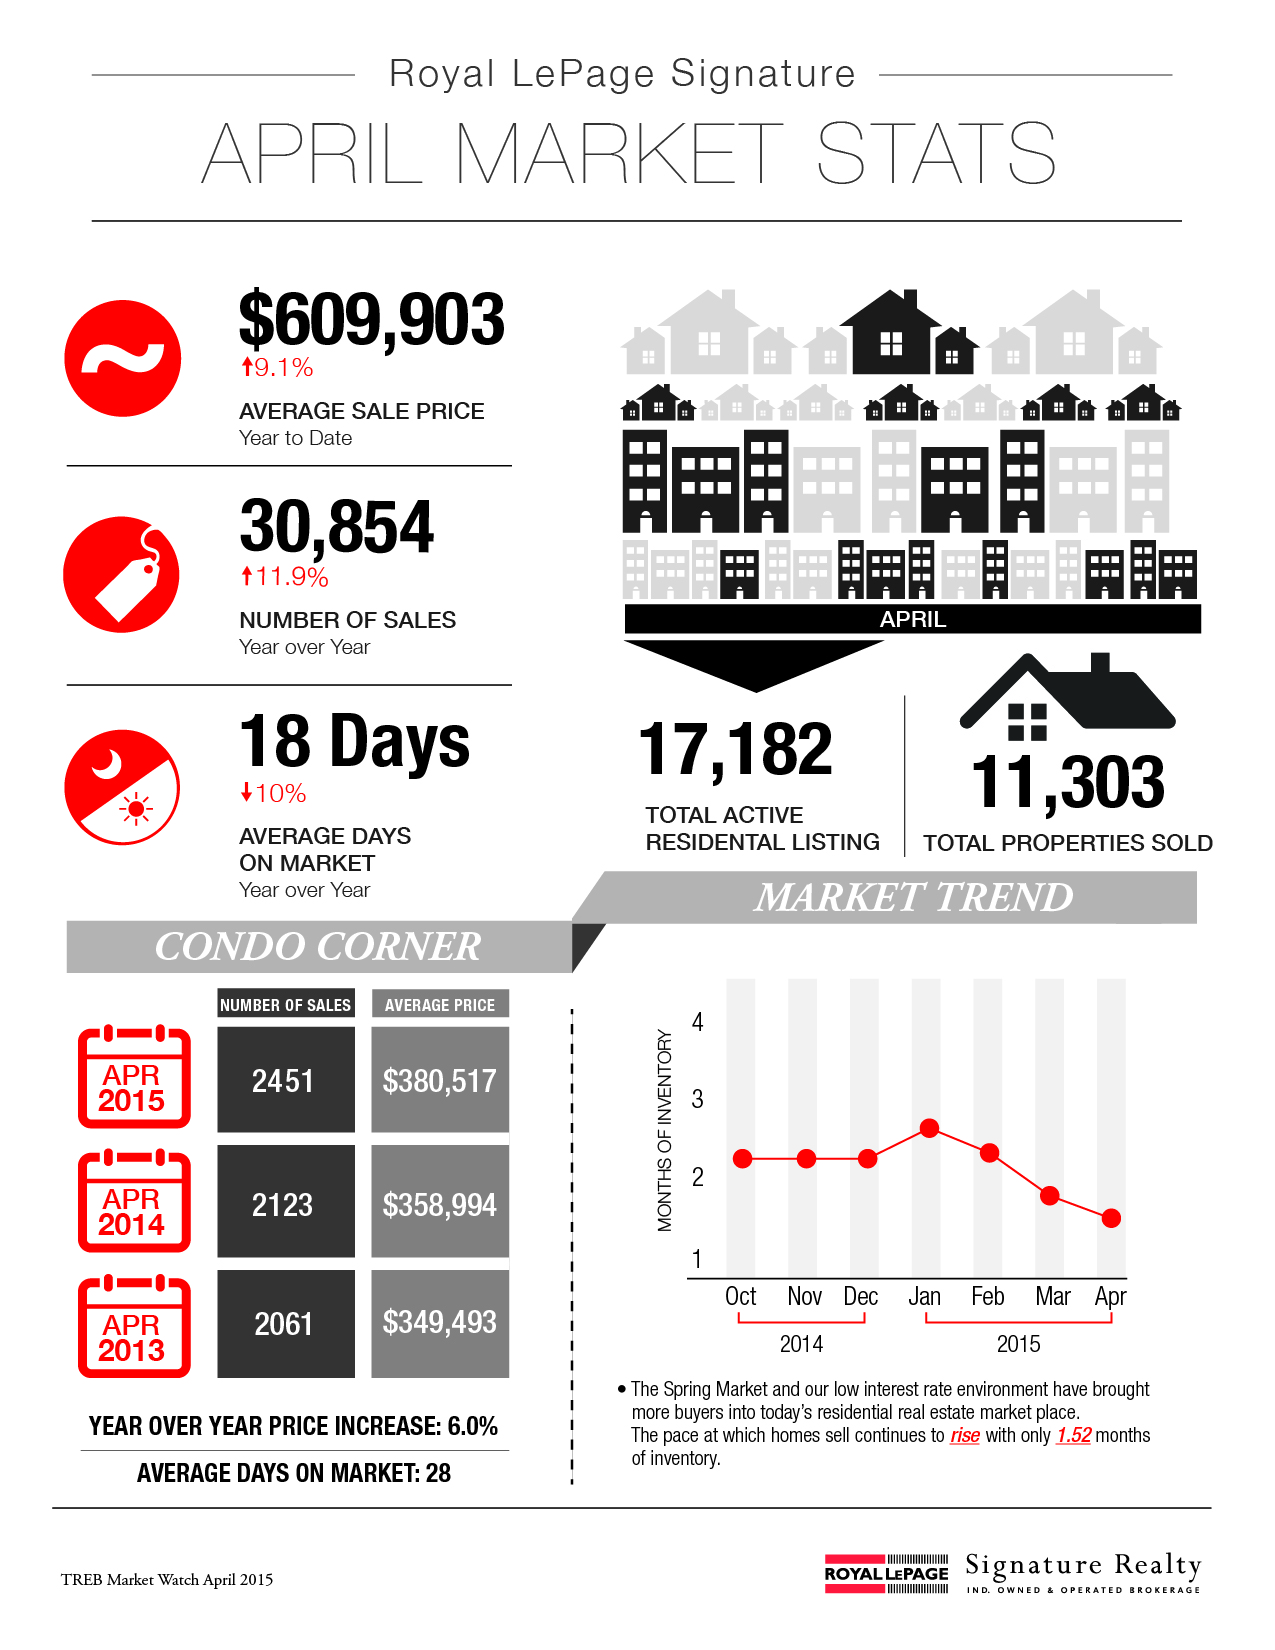 April 2015 Market Stats: Infographic & Report Photo